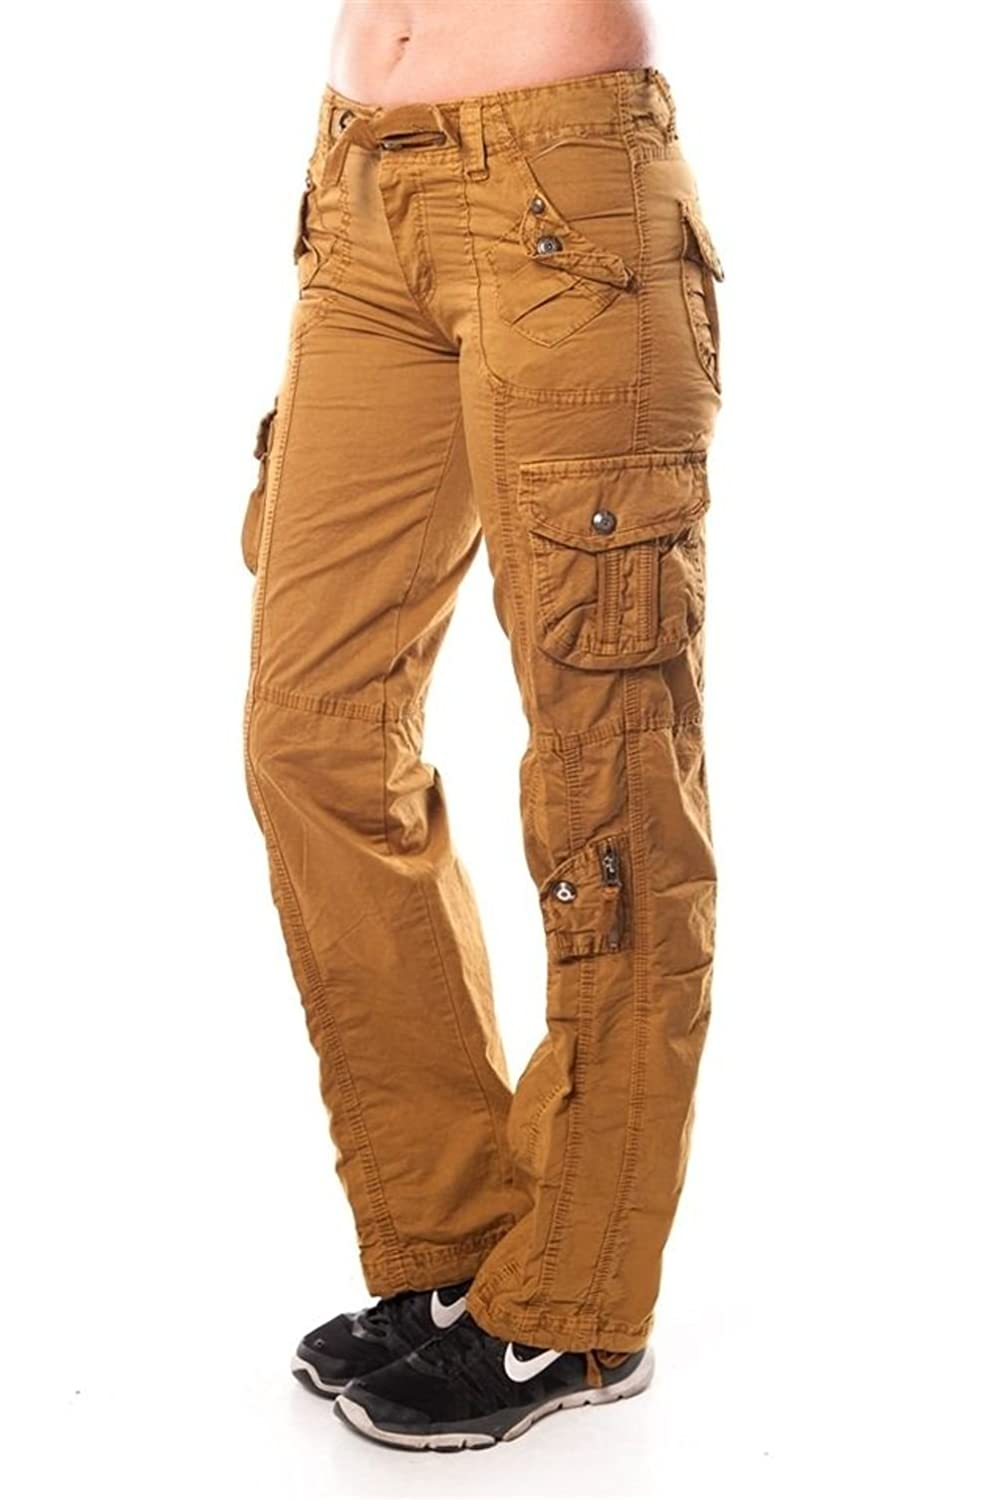 Military Cargo Pants For Women